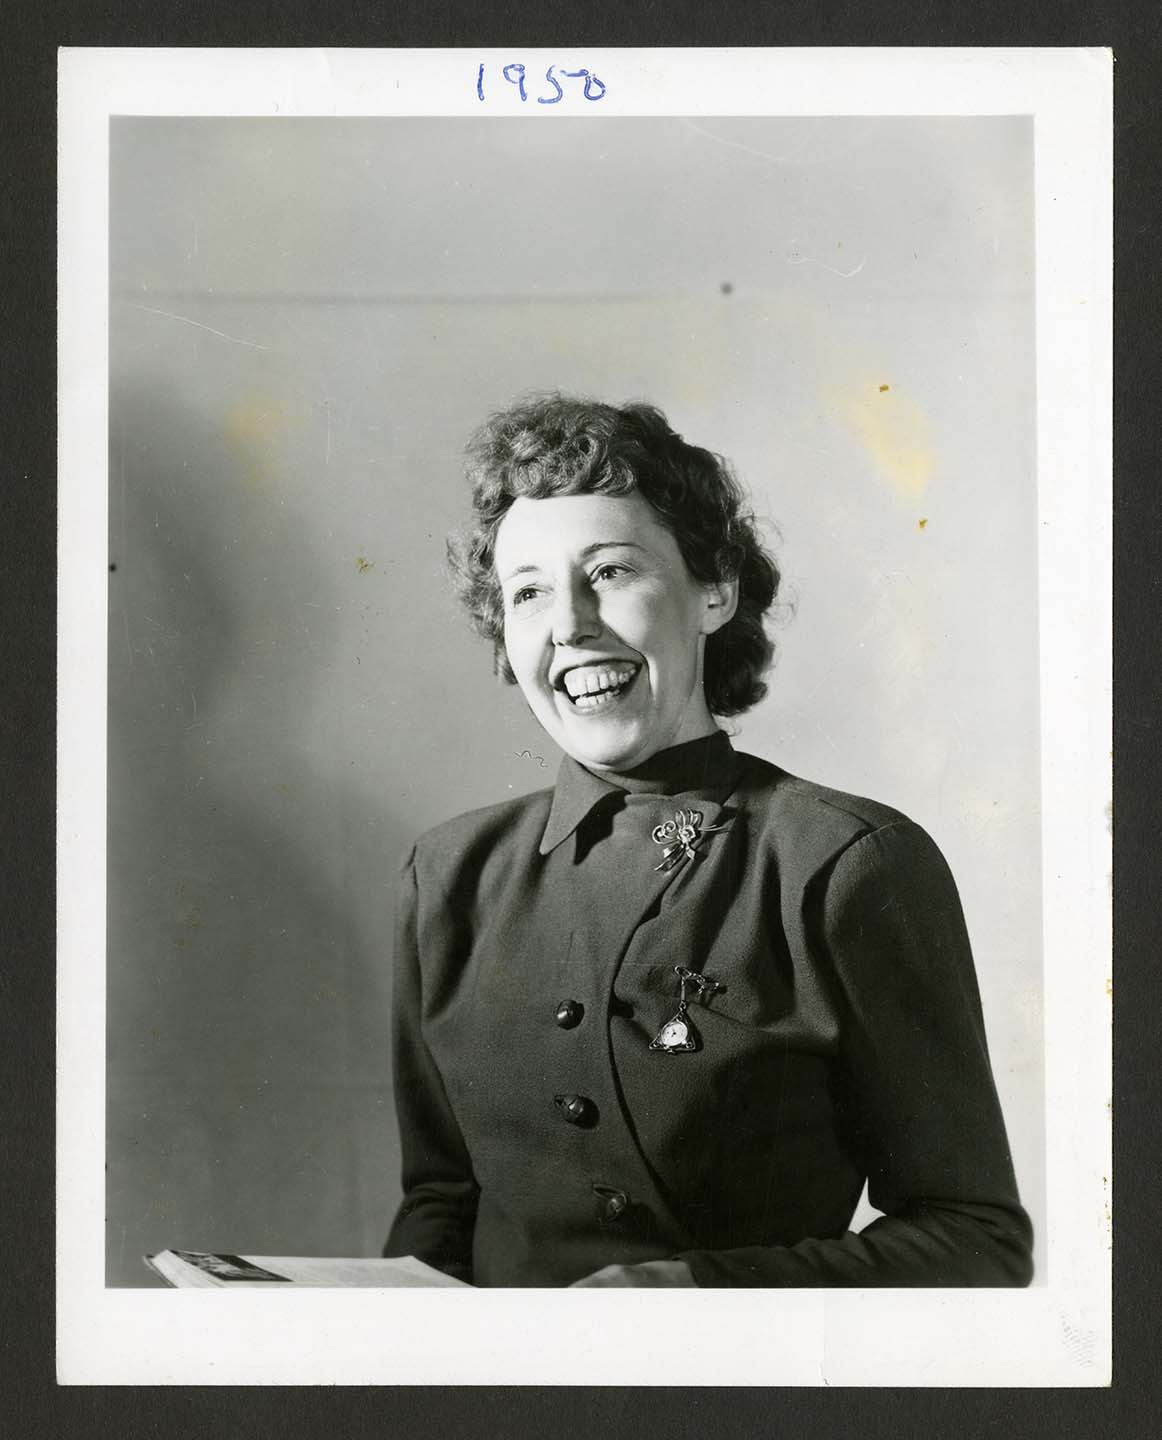 Portrait photograph of a woman smiling widely. She is wearing two pins on her collared dress.